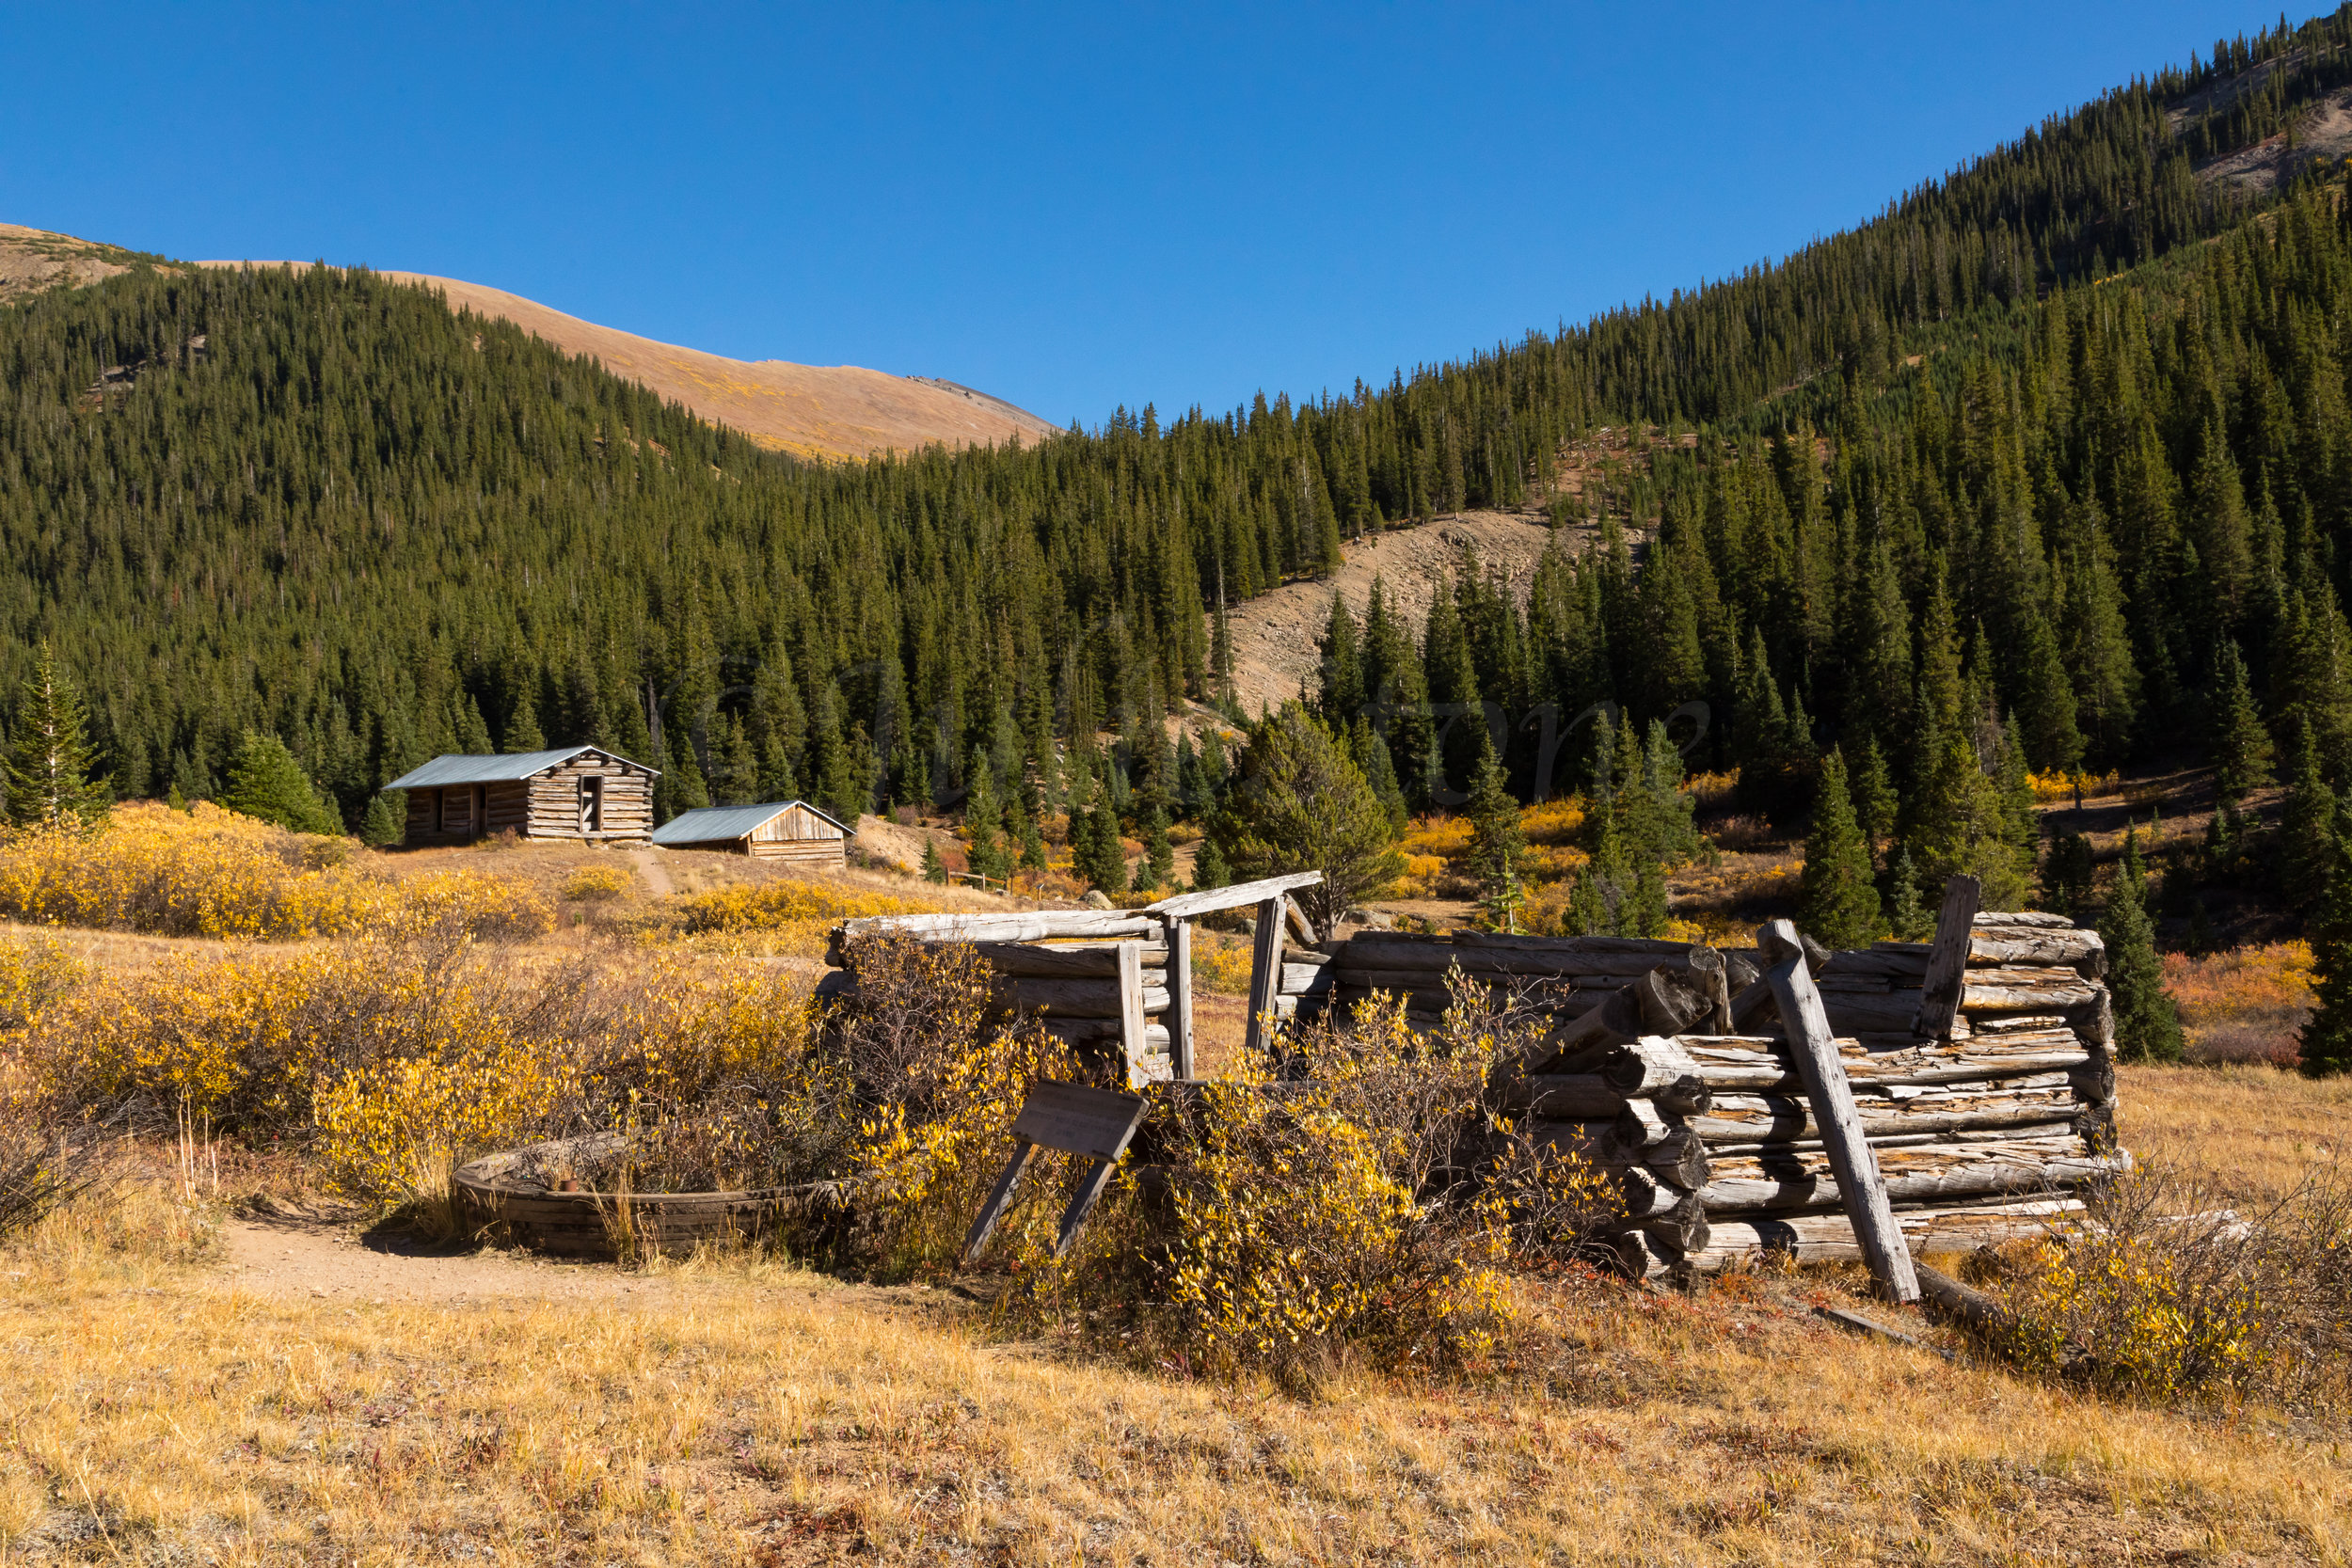 Independence Pass, Image # 1637